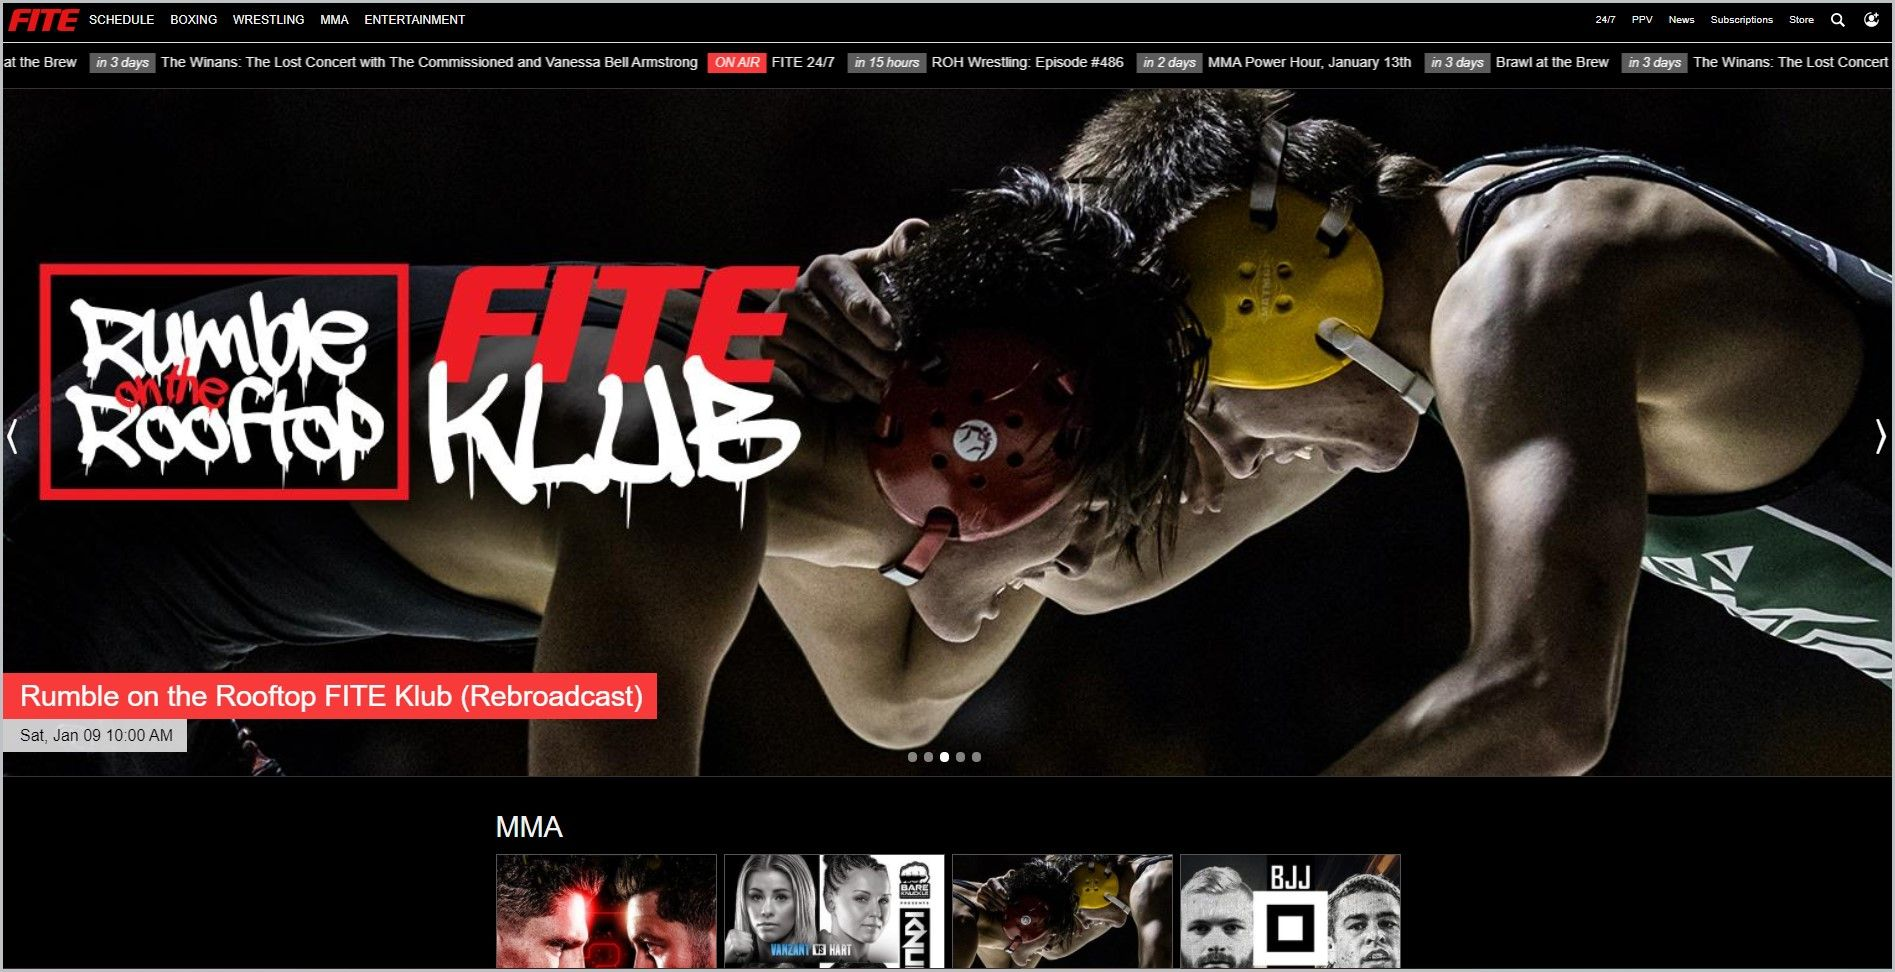 screenshot of Fite.tv MMA page